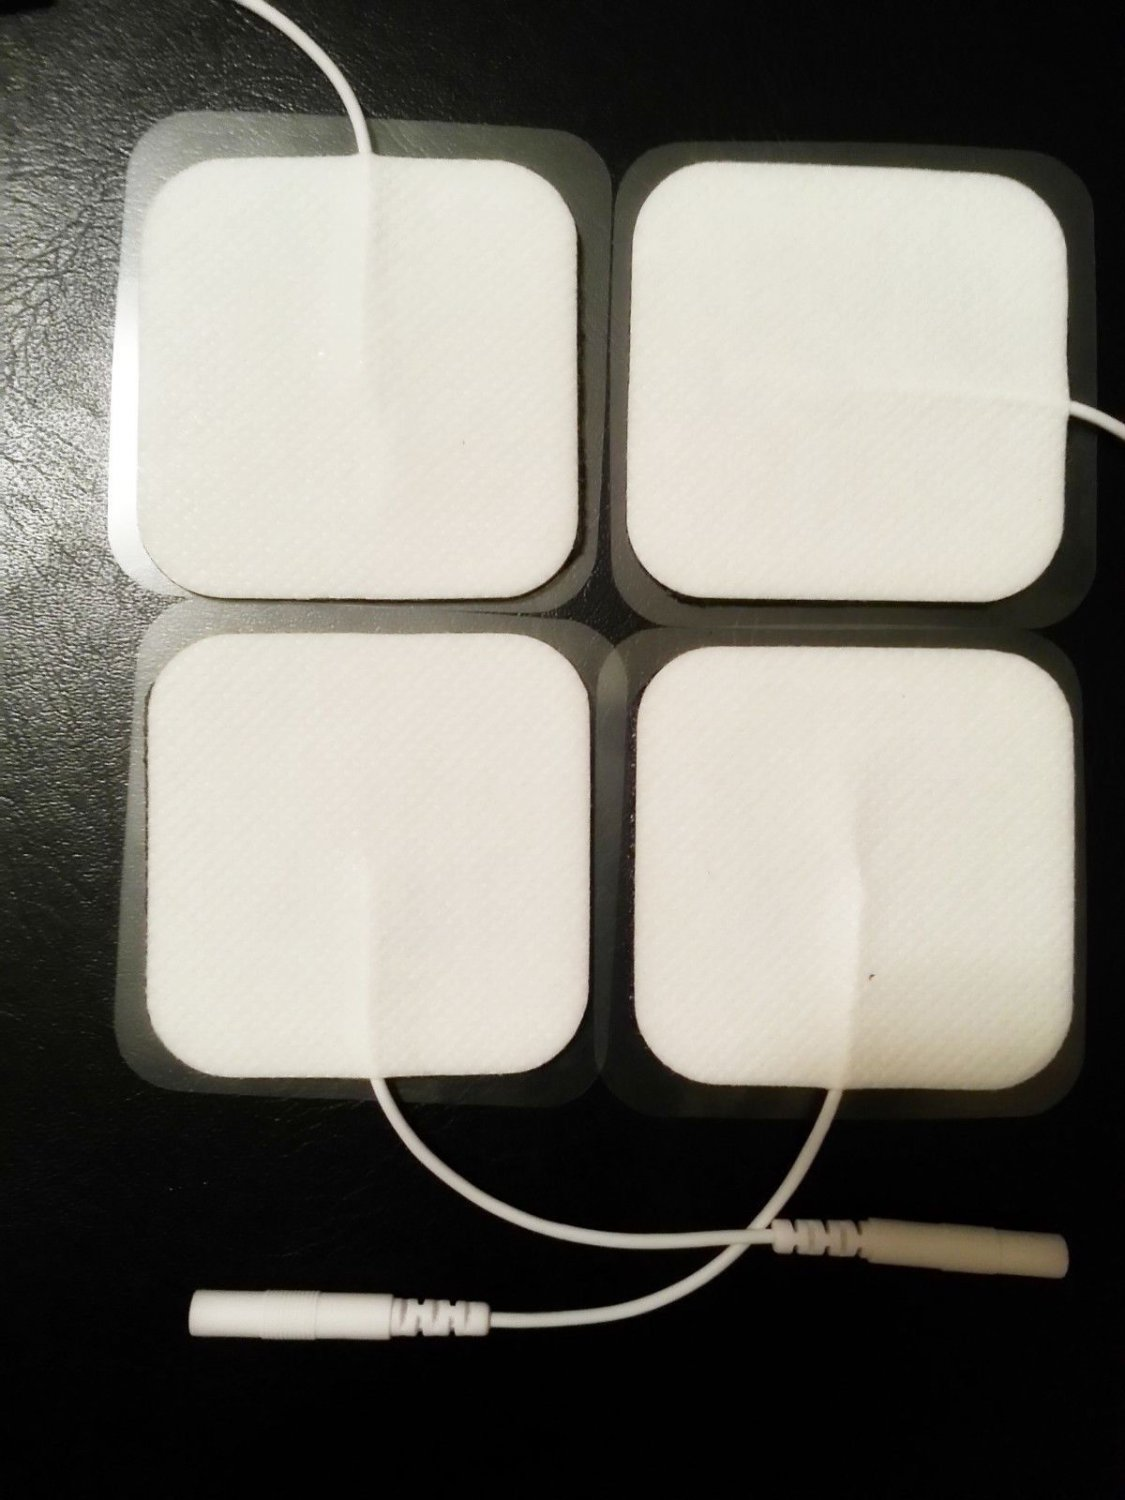 "SQUARE SHAPED GEL ELECTRODES(4)SELF ADHESIVE MASSAGE PADS 2""X2"" FOR THERAPY TENS"